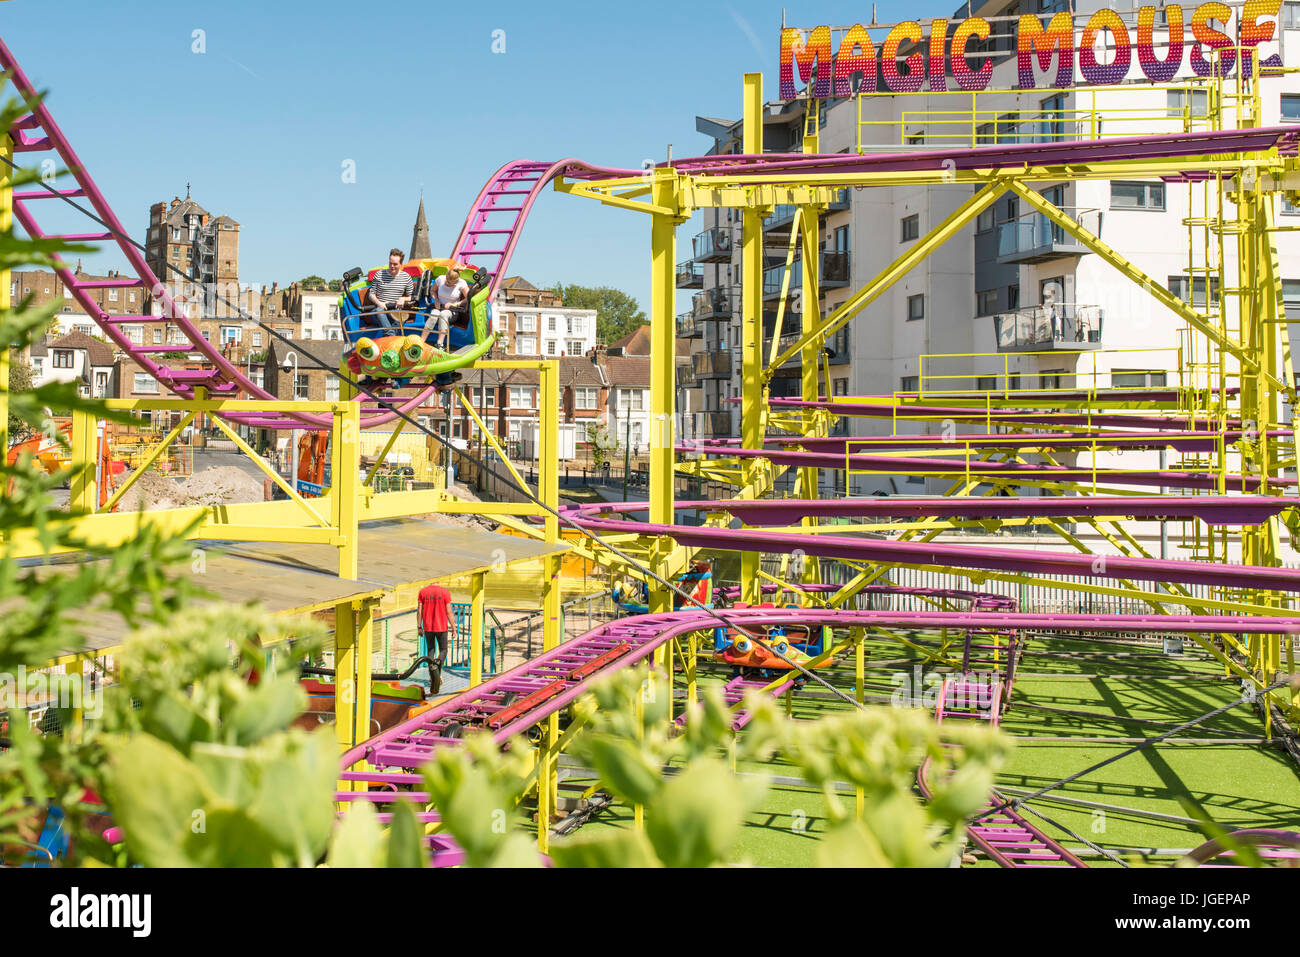 People enjoying the Magic Mouse ride at the recently re-opened, Dreamland Pleasure Park, Margate, Kent. - Stock Image